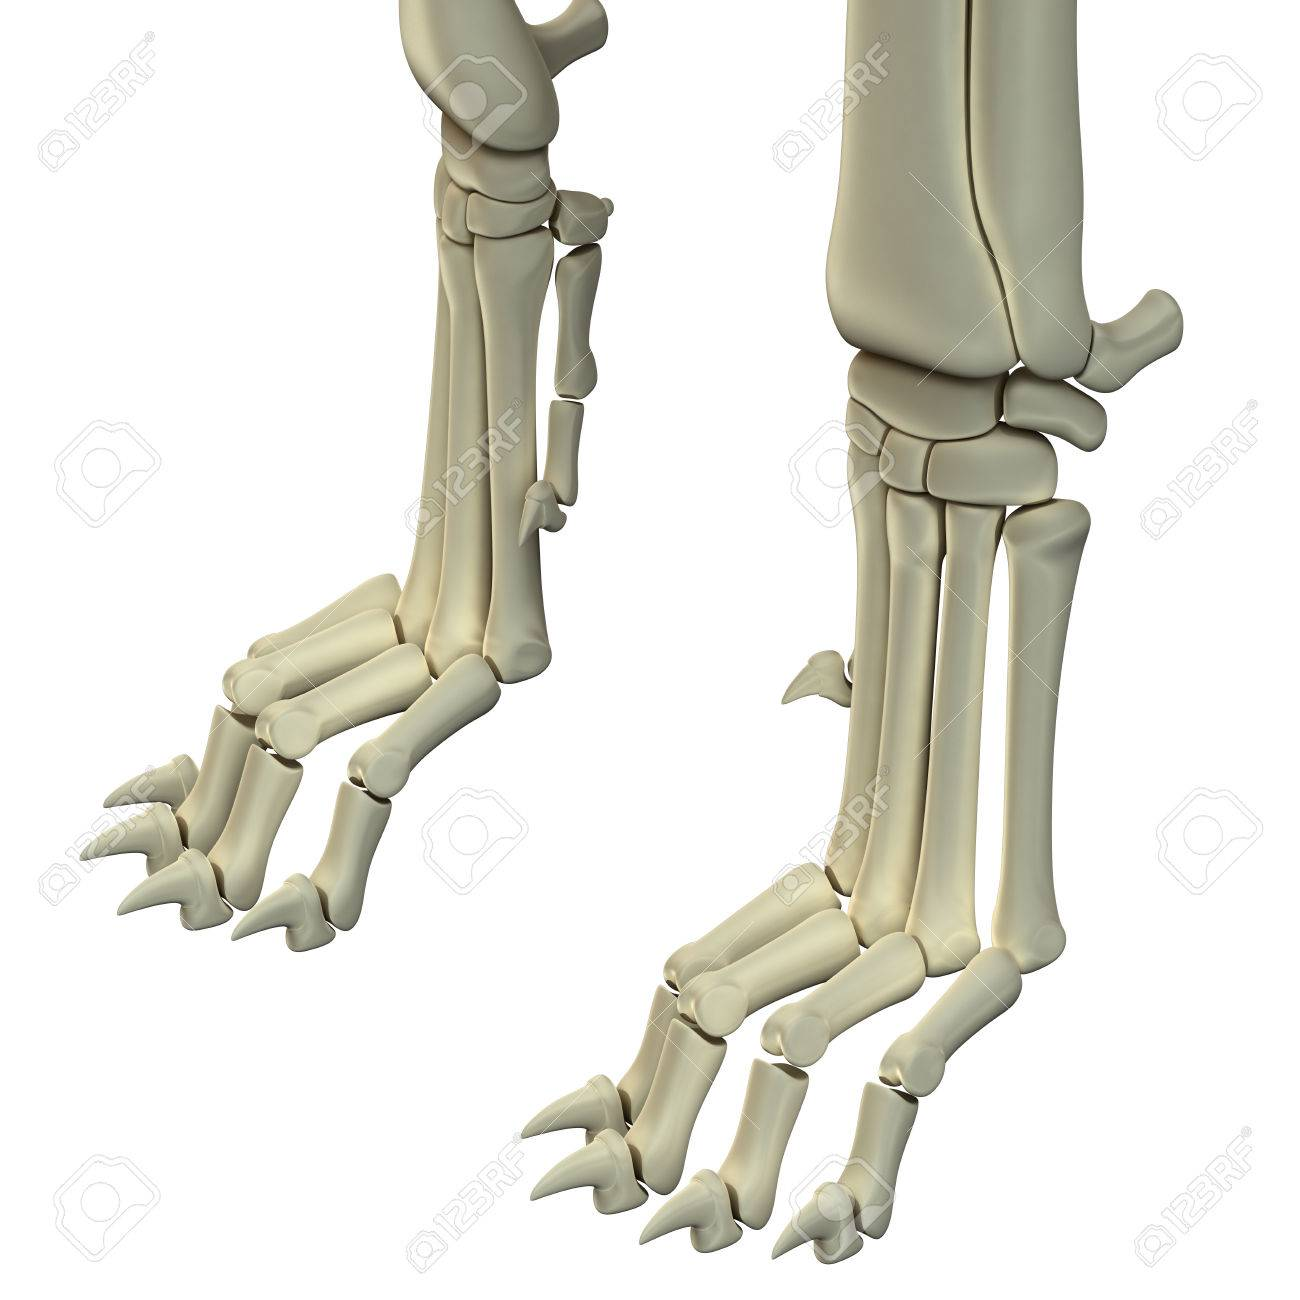 Dog Hind Legs Anatomy Bones Stock Photo, Picture And Royalty Free ...